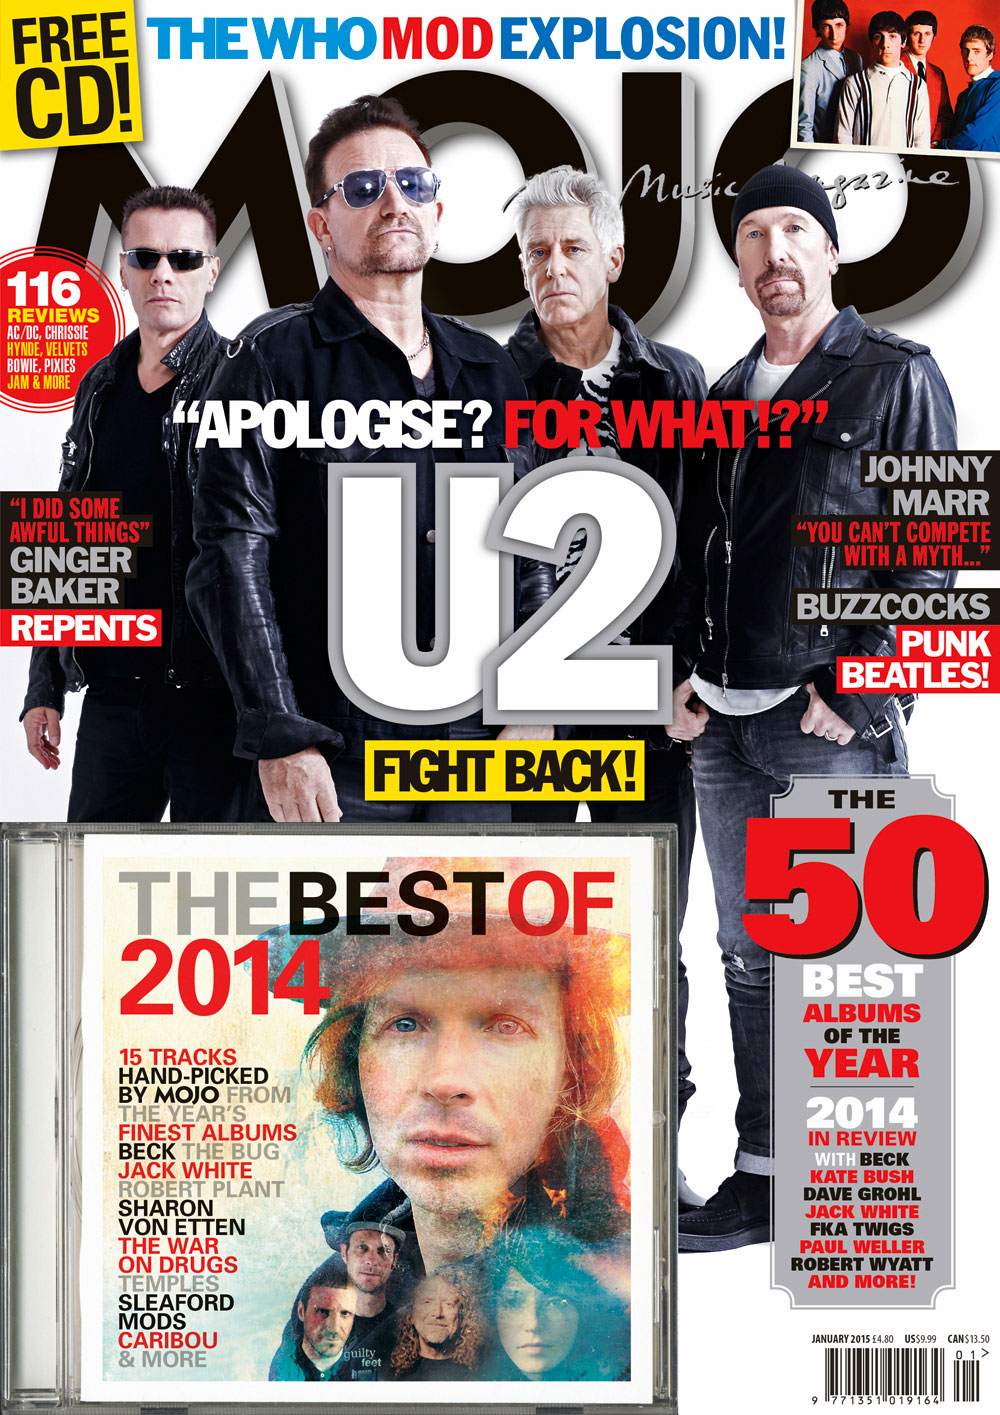 MOJO 254, the U2 issue, available from November 26.